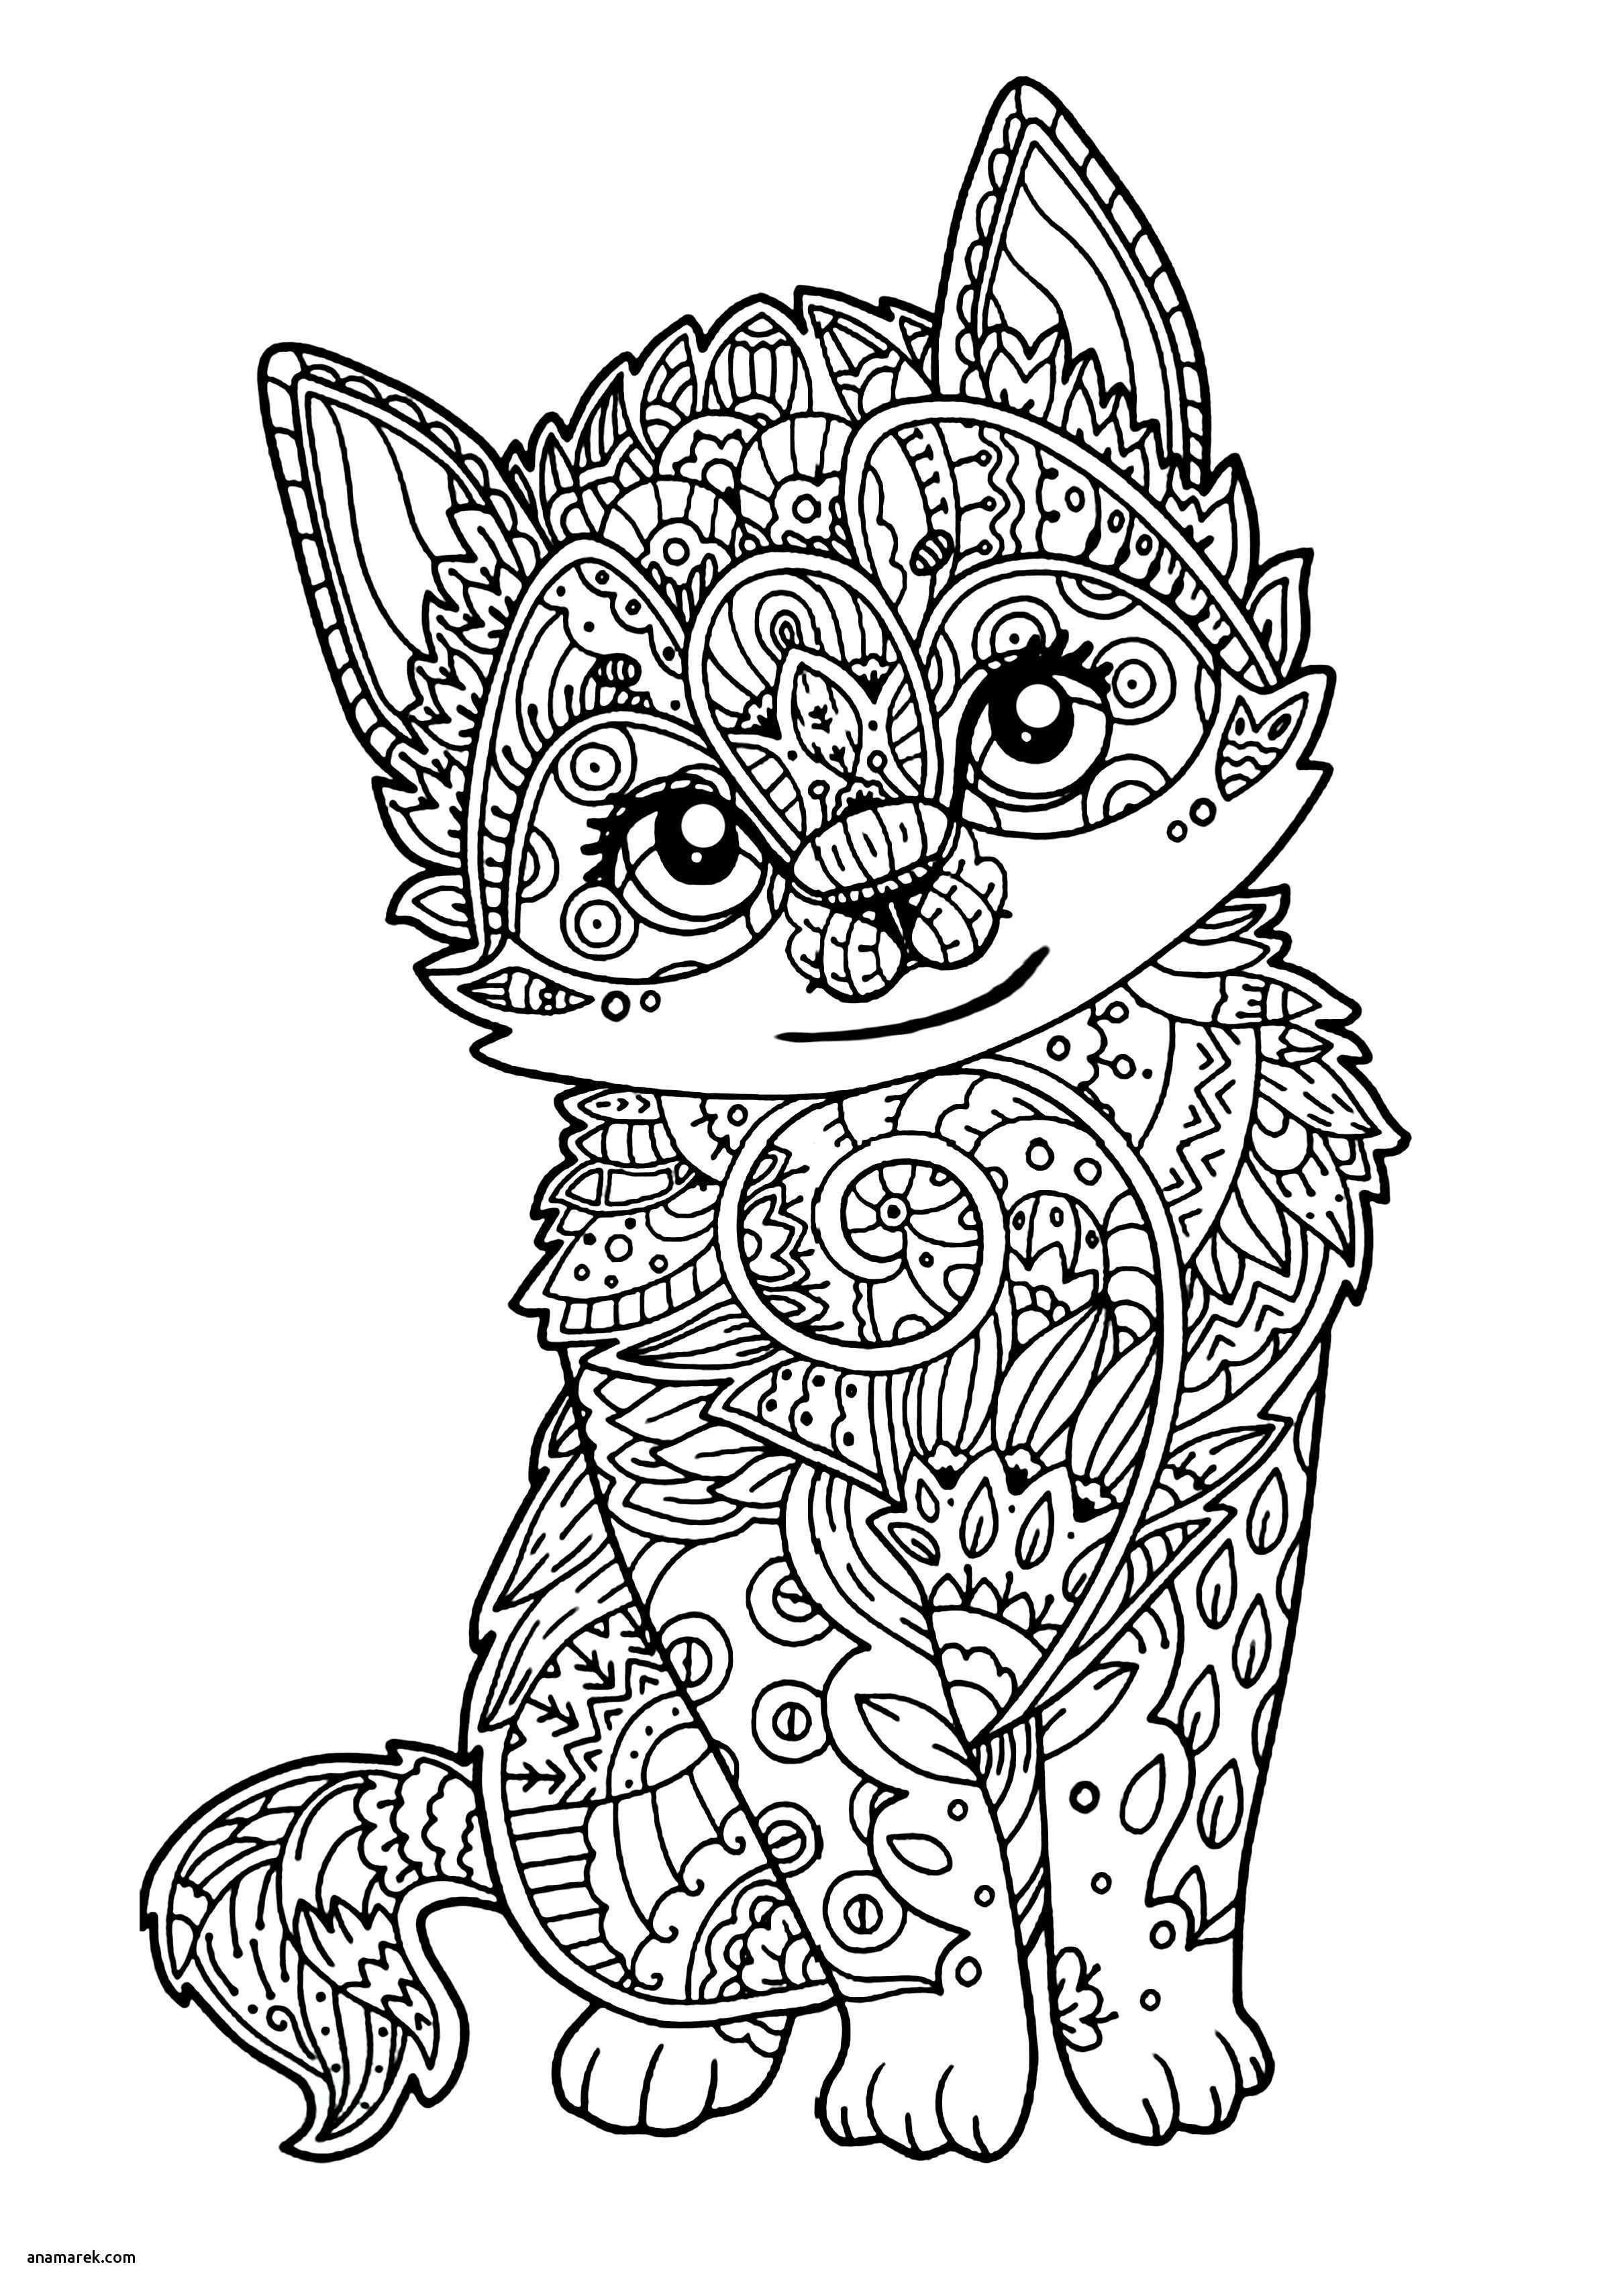 Cat Coloring Pages Printable Unique Kitty Cat Coloring Pages Inspirational Printable Kitty Coloring Cat Coloring Book Kittens Coloring Cat Coloring Page